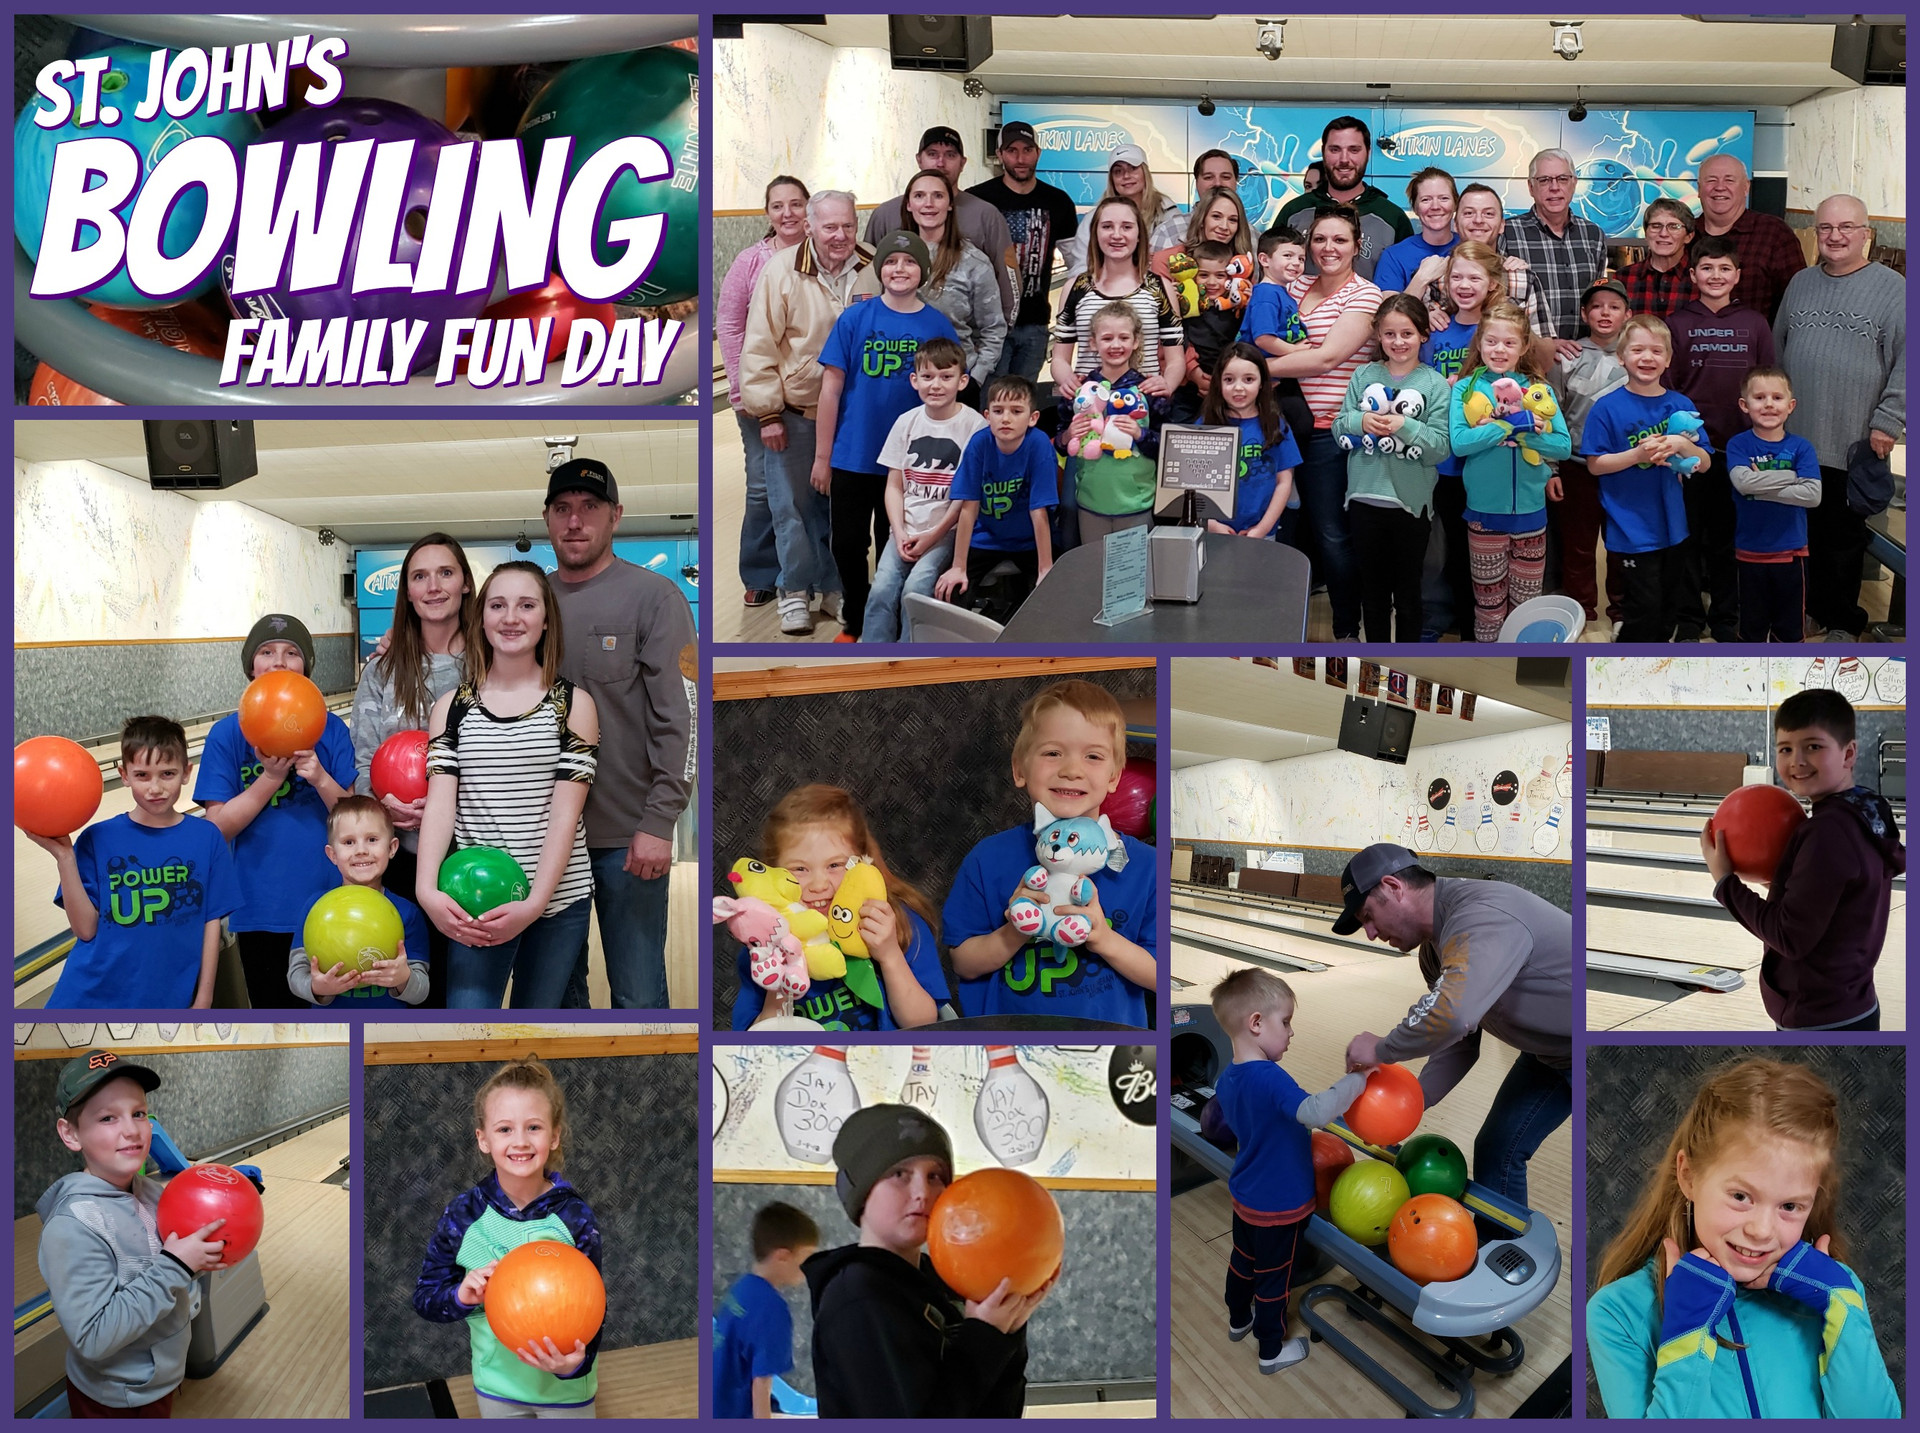 Family Fun Day - Bowling